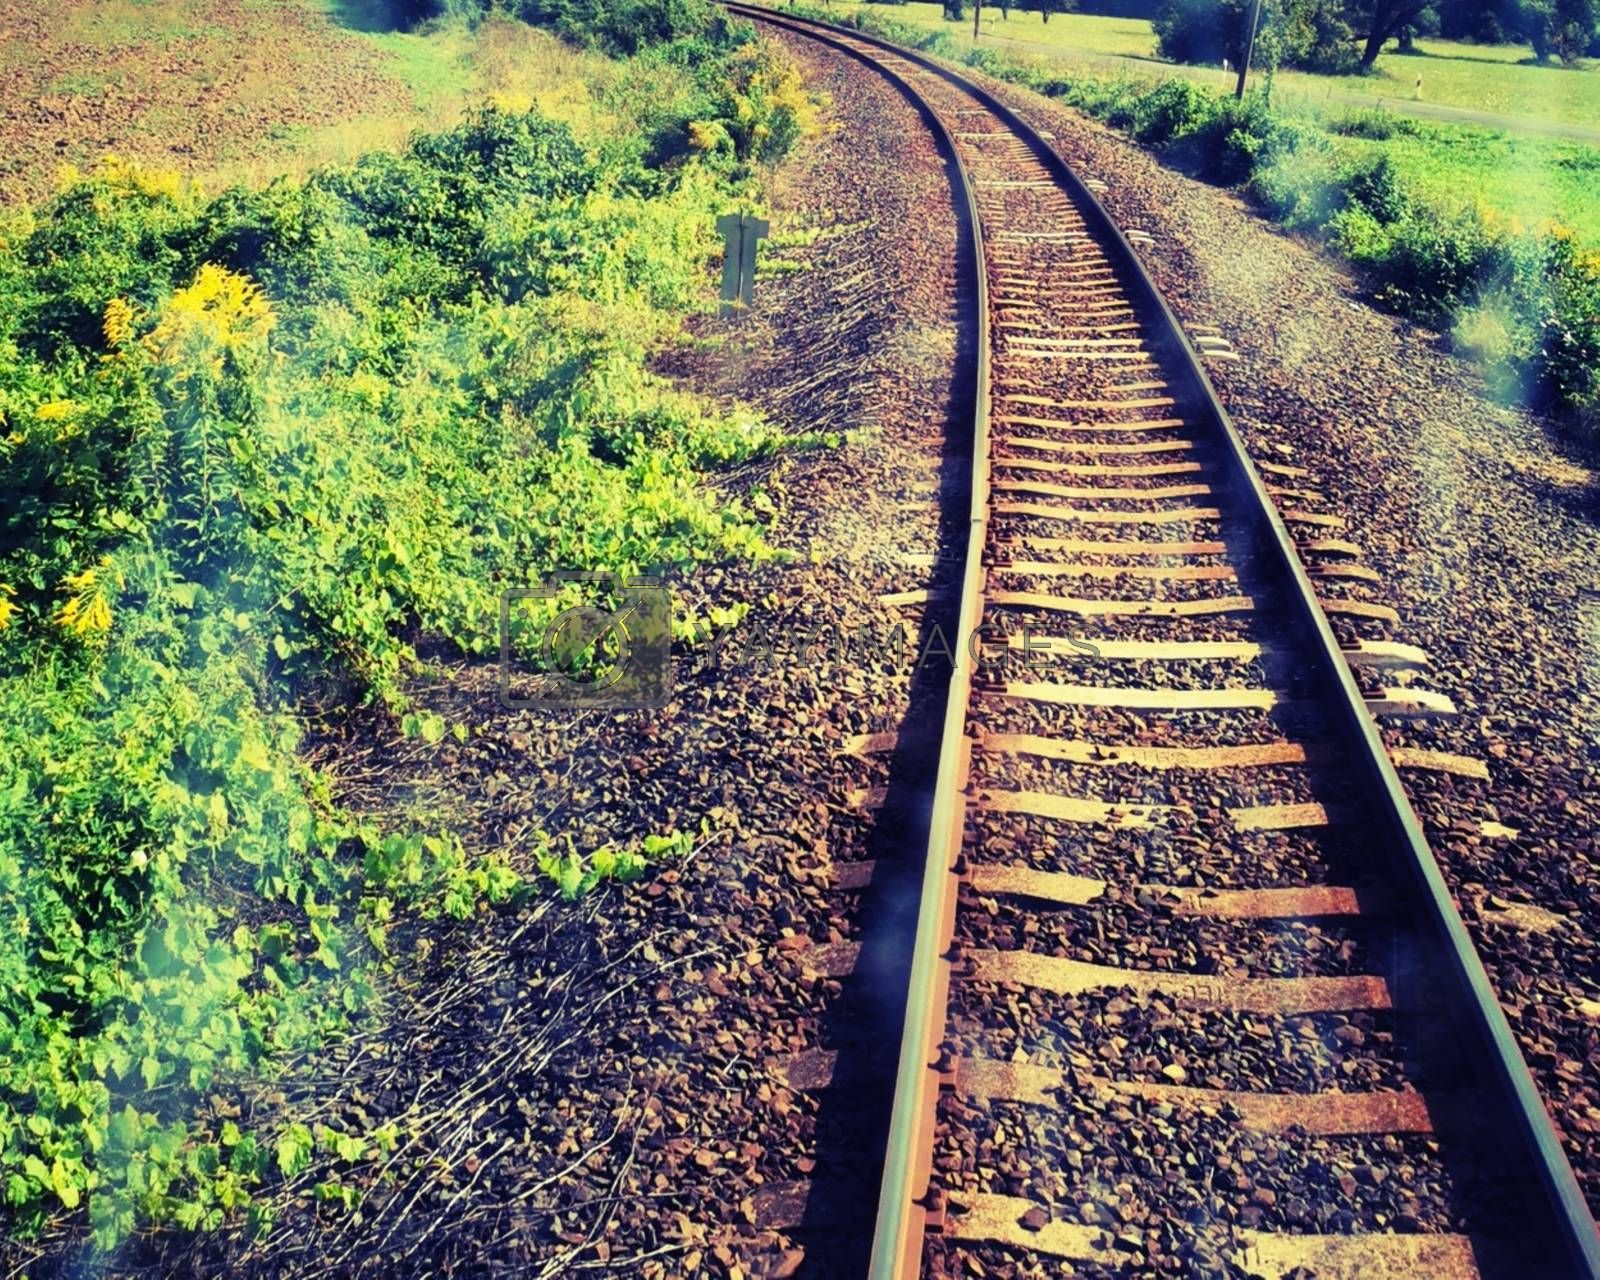 Royalty free image of Train track skyline and green field photographed from the train by balage941